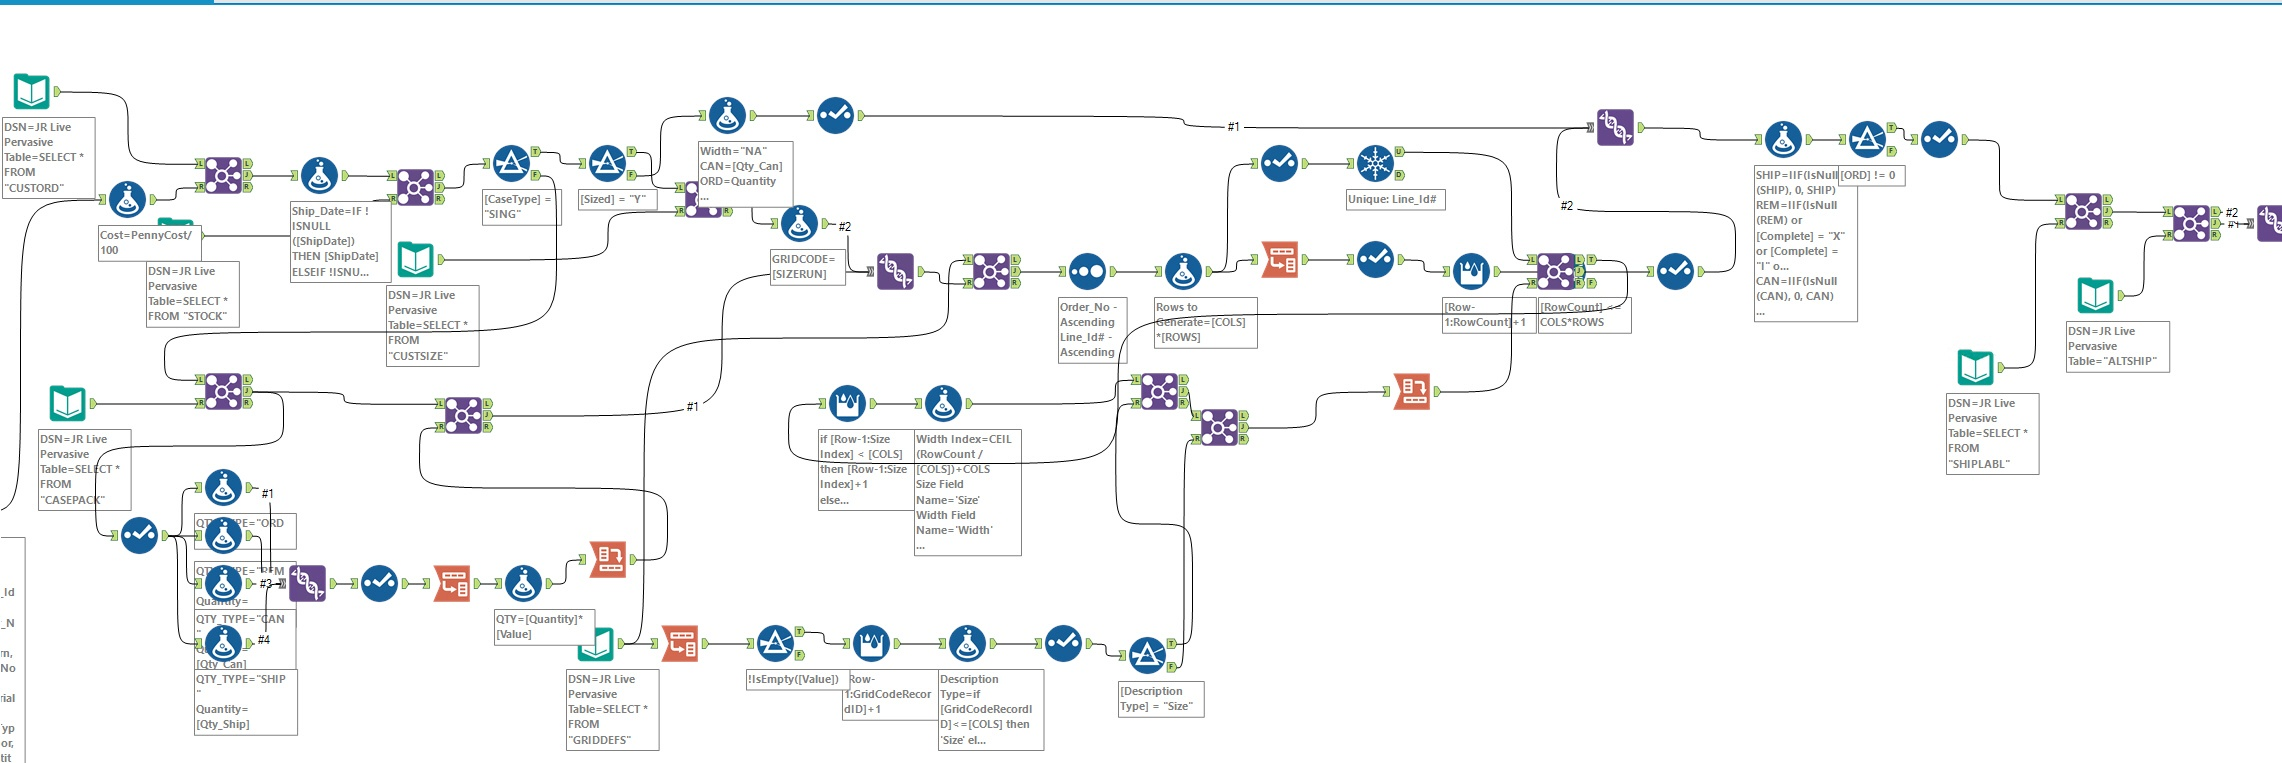 teknion-jrenee-case-study-image-Alteryx-Data-Mart 1